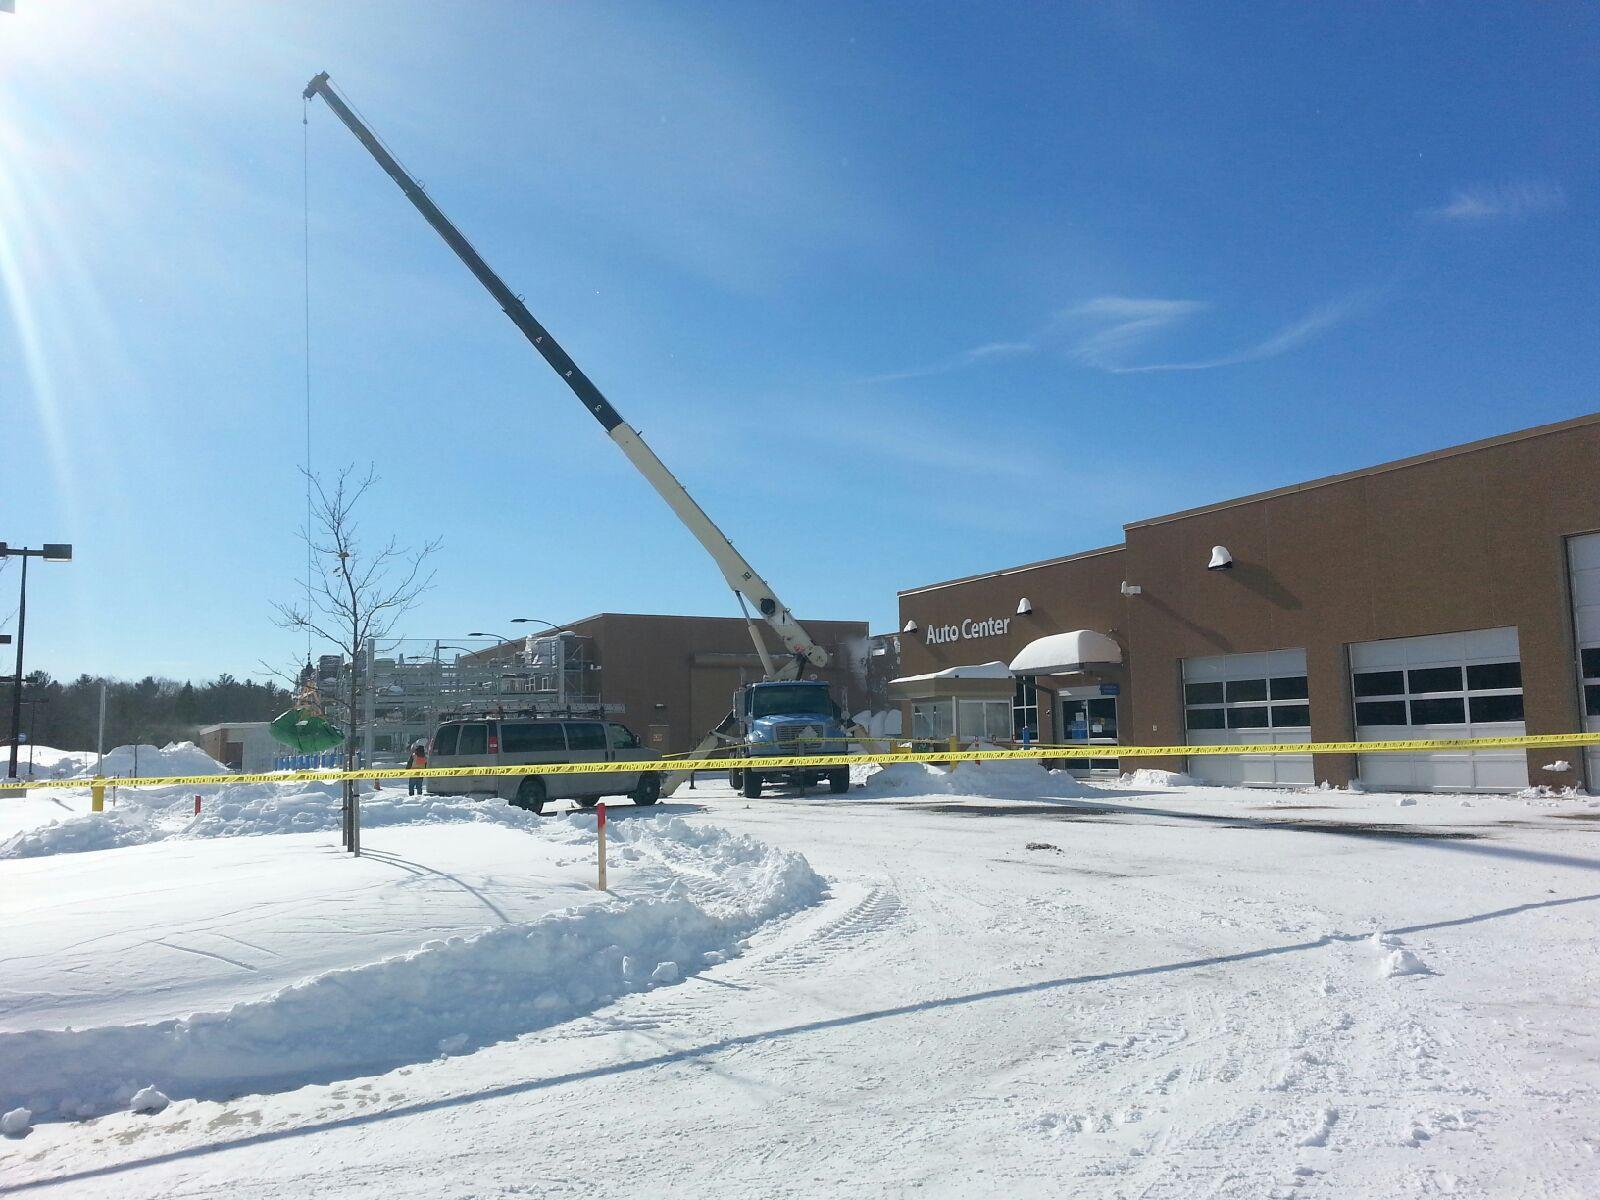 Walmart Rooftop Snow Removal Seabrook Nh Eagle Rivet